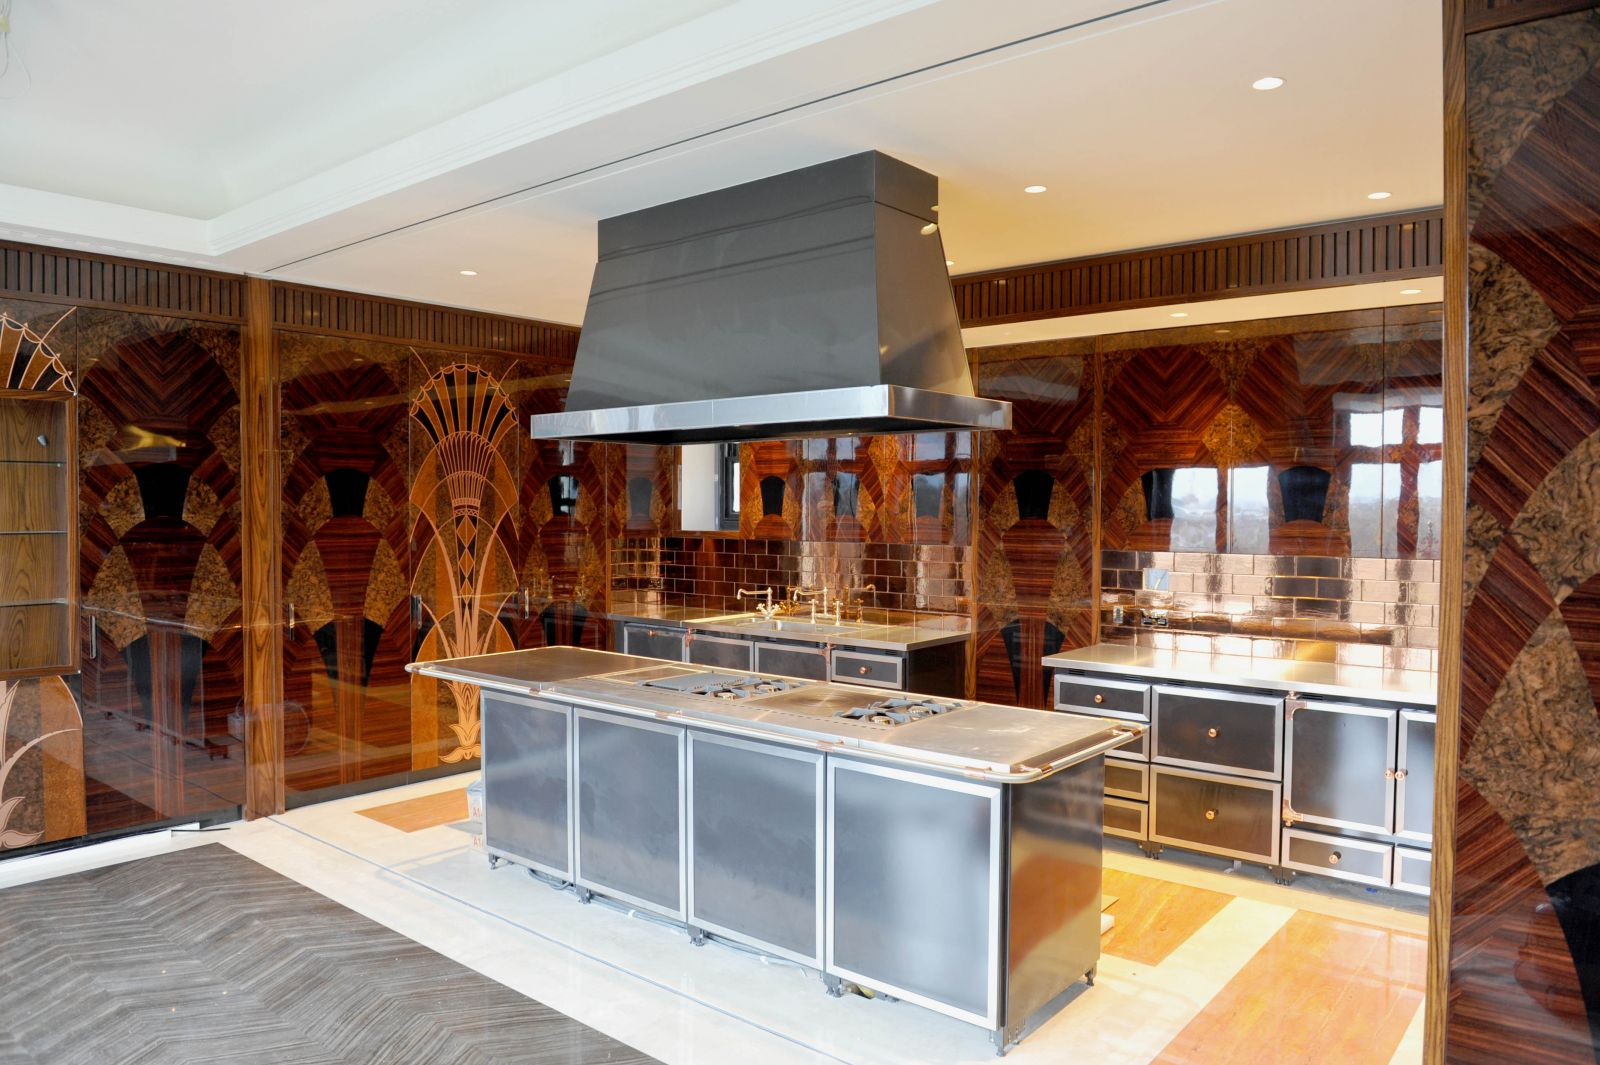 A La Cornue forms the large island at the centre of this Art Deco inspired kitchen.